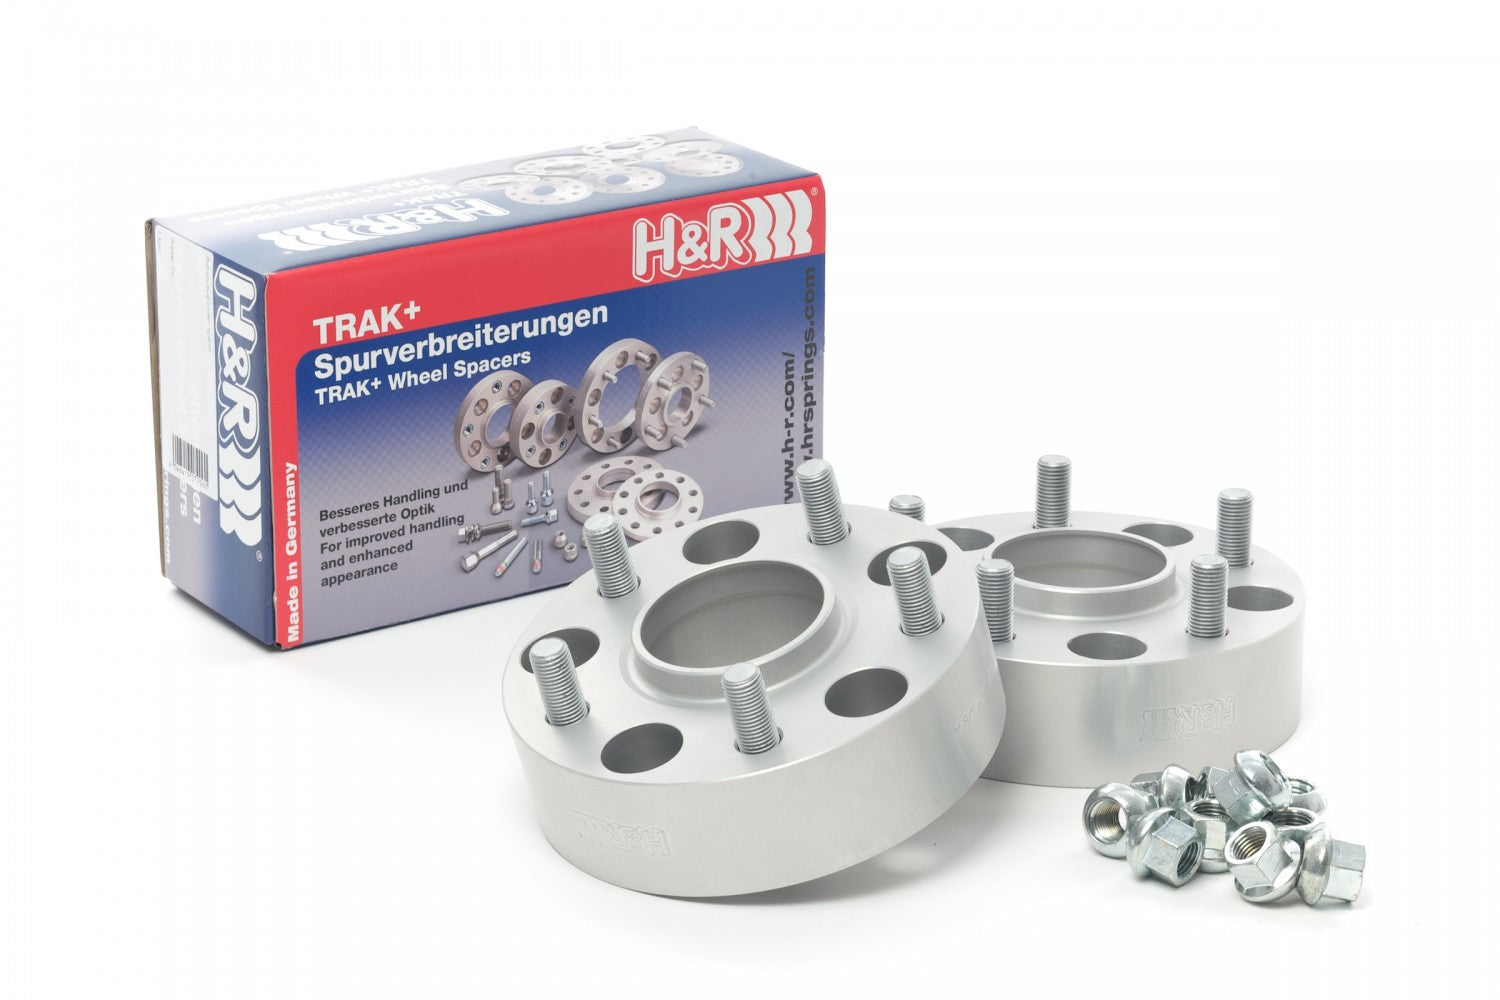 H&R TRAK+ Wheel Spacers - Pair - DRM Series - 25mm 5x114.3 / Center Bore 66.1 / Stud Thread 12x1.25 - 5065661